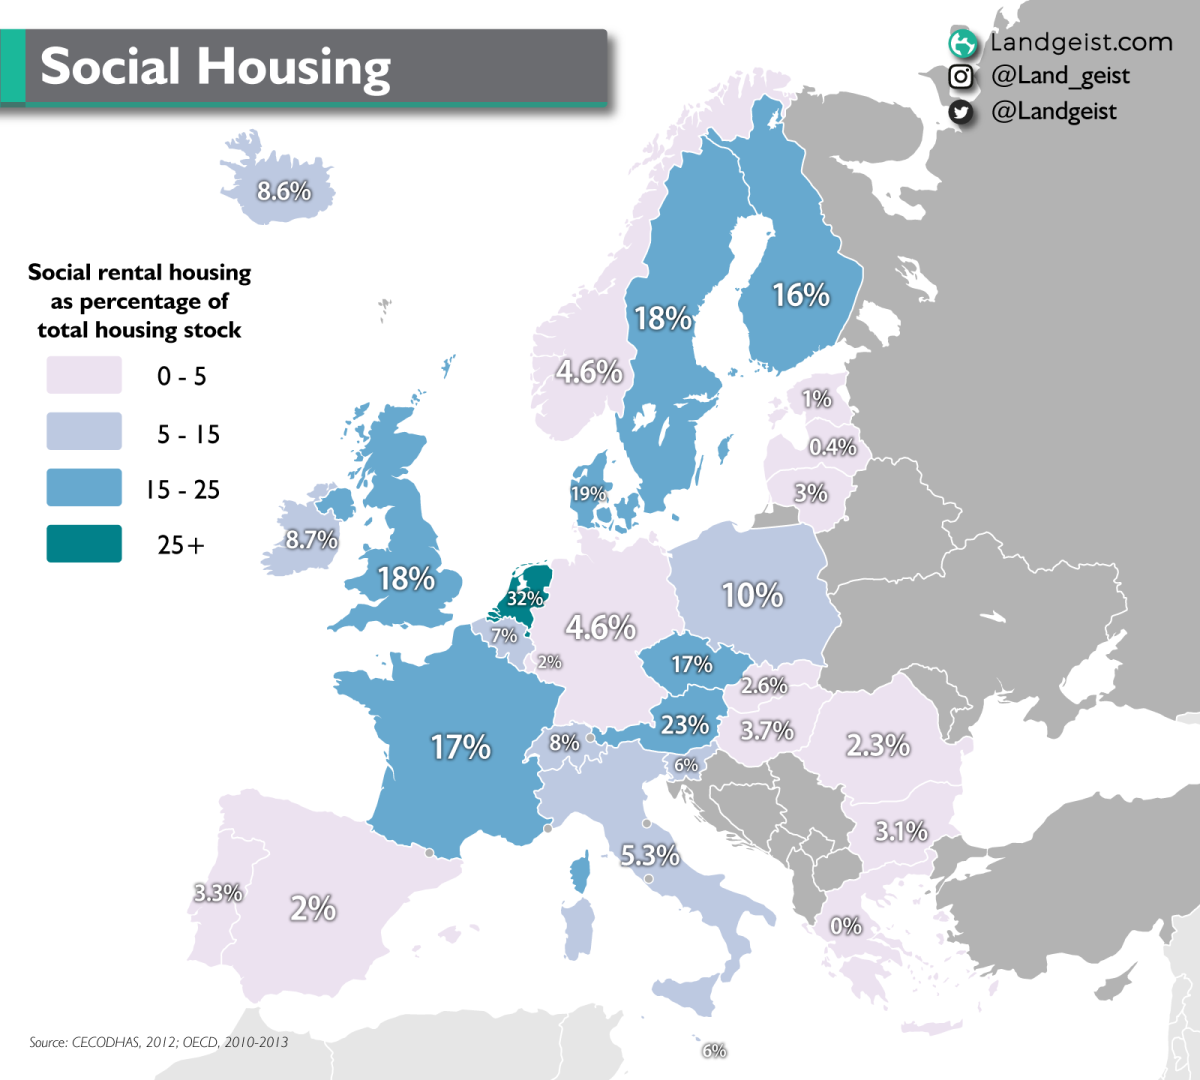 Map of Europe showing social rental dwellings as a percentage of the total housing stock.